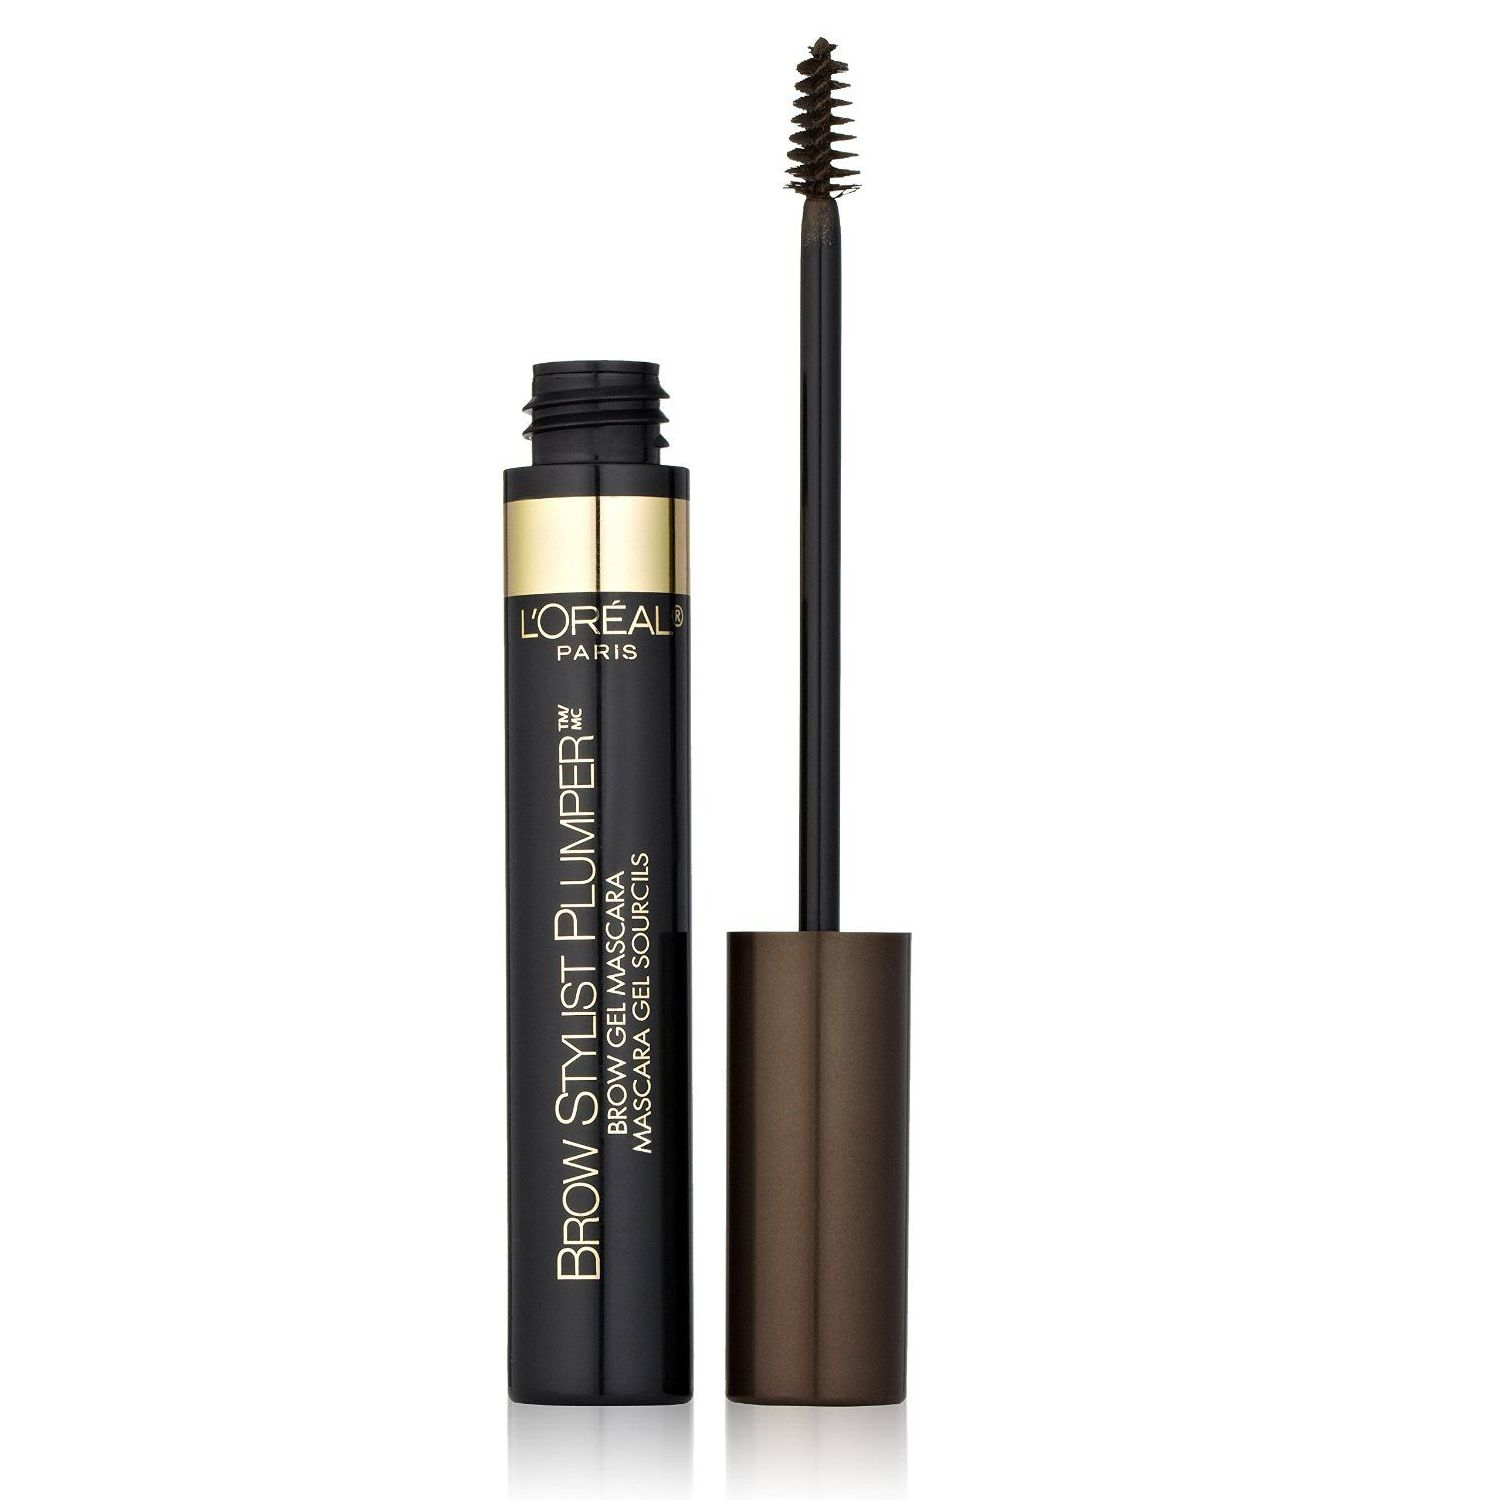 0ca1206cc6d L'Oreal Paris Brow Stylist Plumper Brow Gel Mascara reviews, photos ...